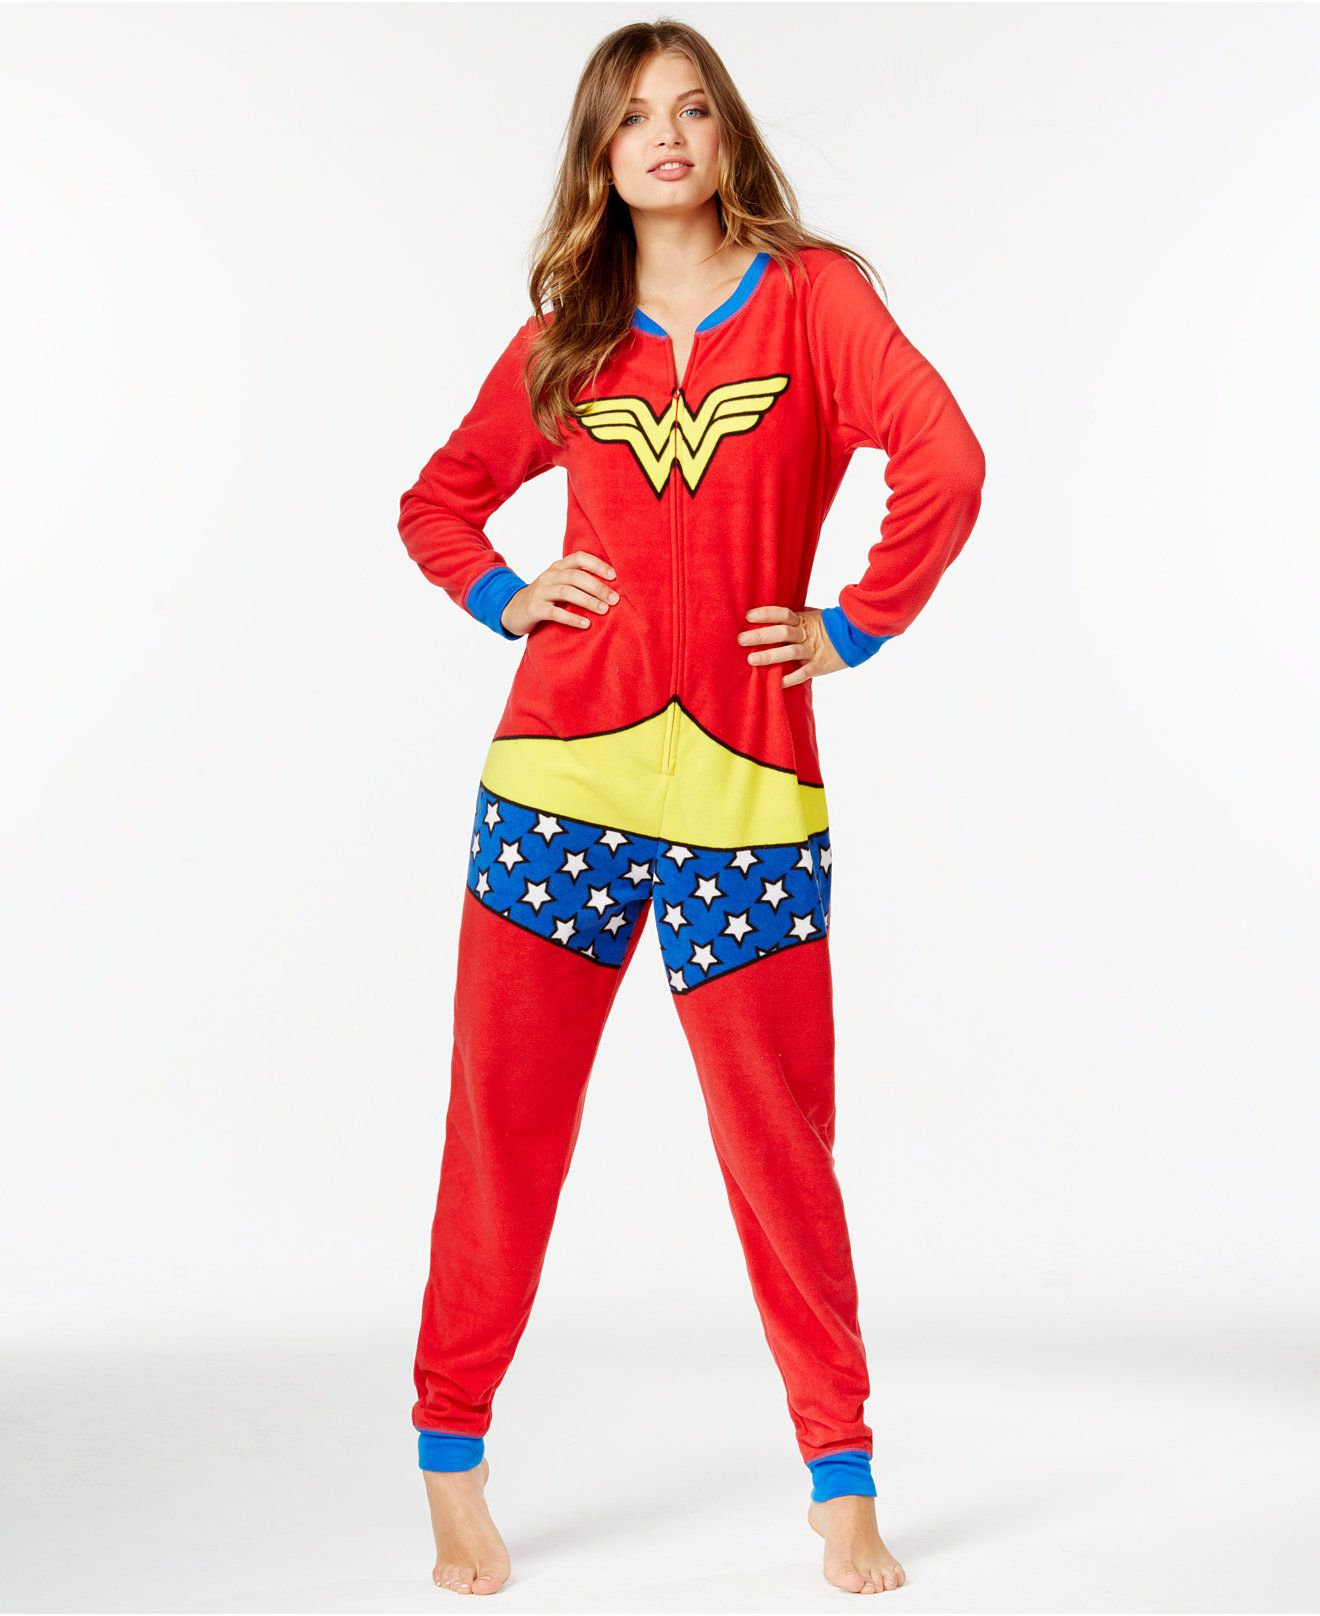 ec0b1934225f Wonder Woman Adult Onesie - Shop All Pajamas   Robes - Women - Macy s